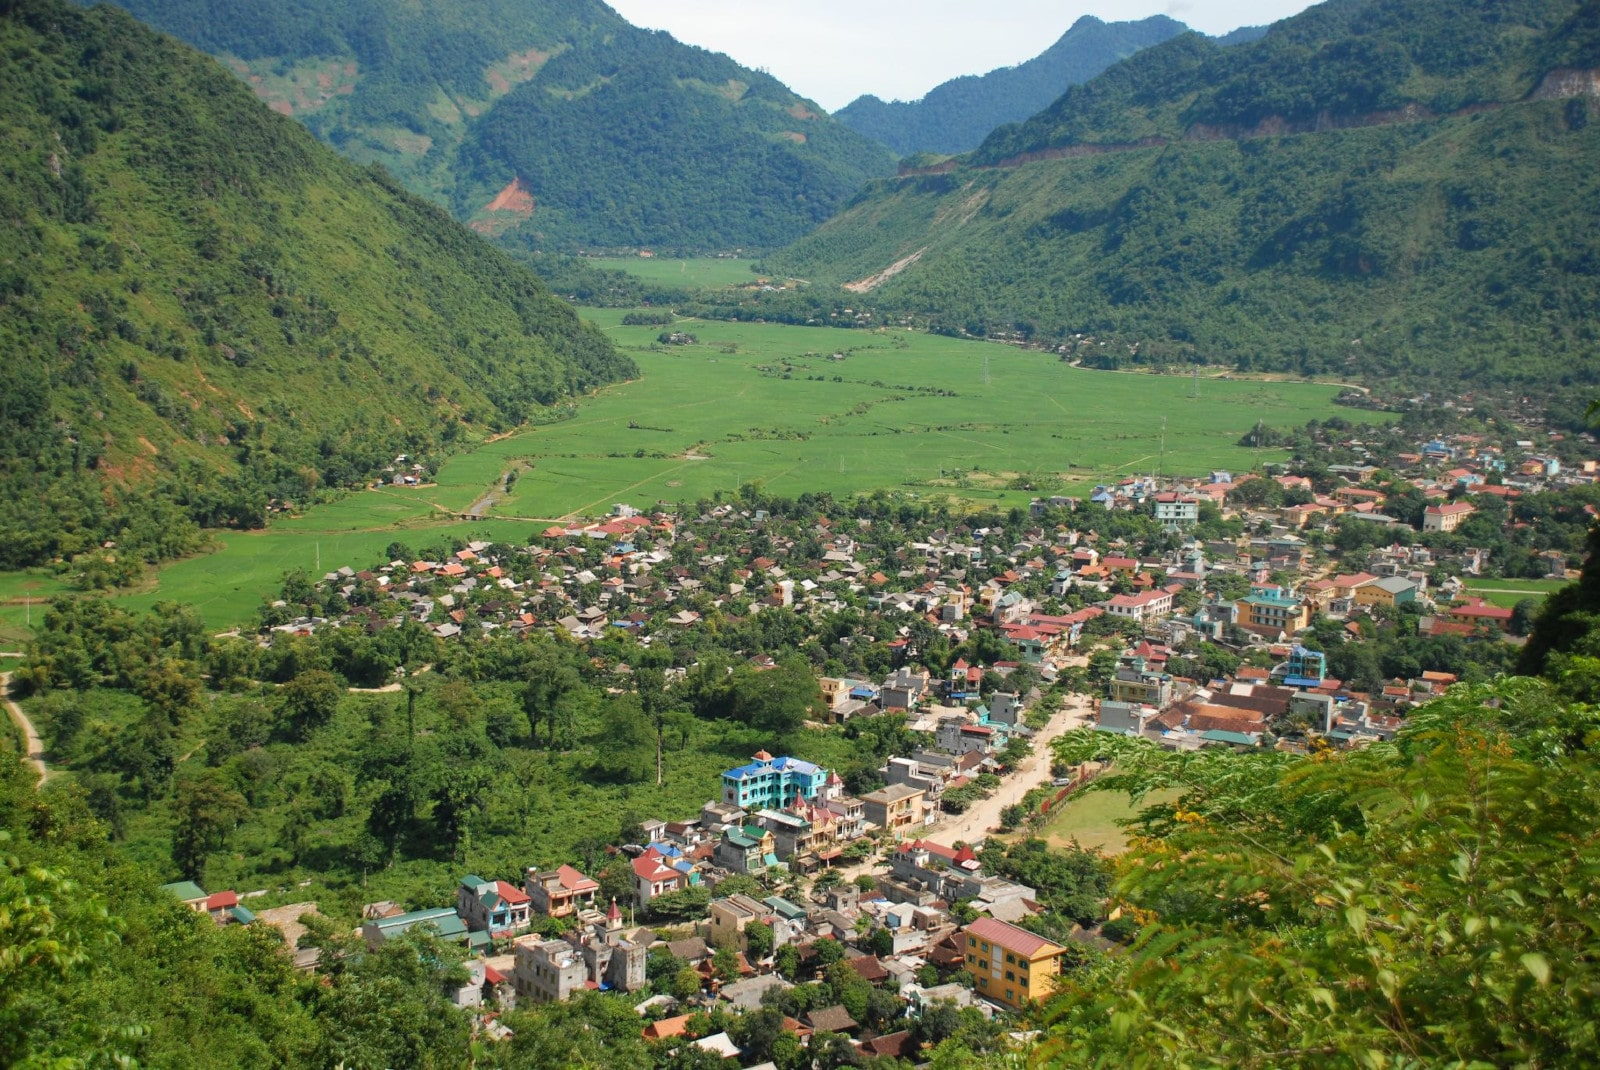 Image of the Mai Chau Valley in Vietnam